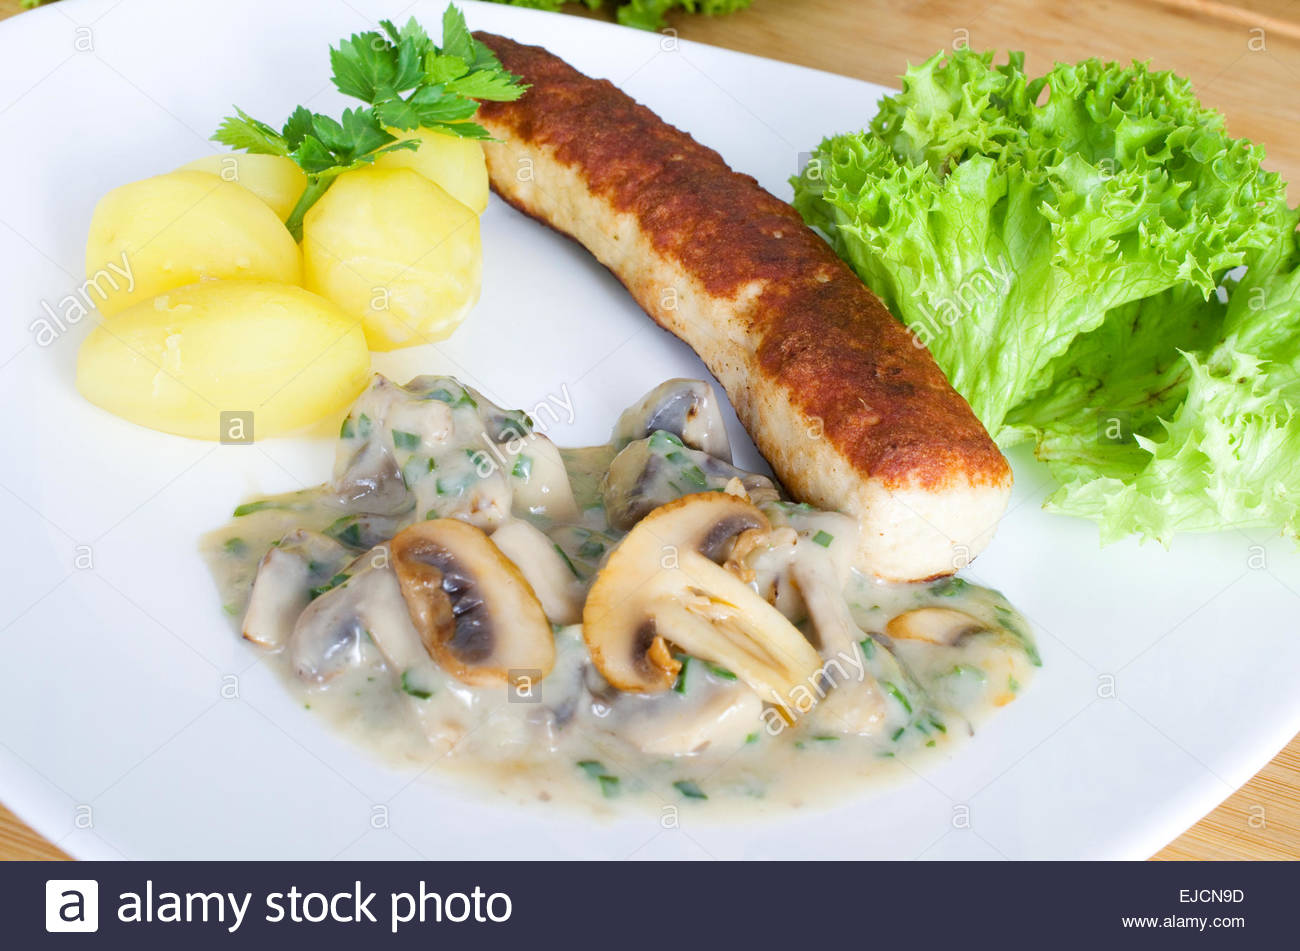 Grilled sausage on potatoes and mushrooms Stock Photo